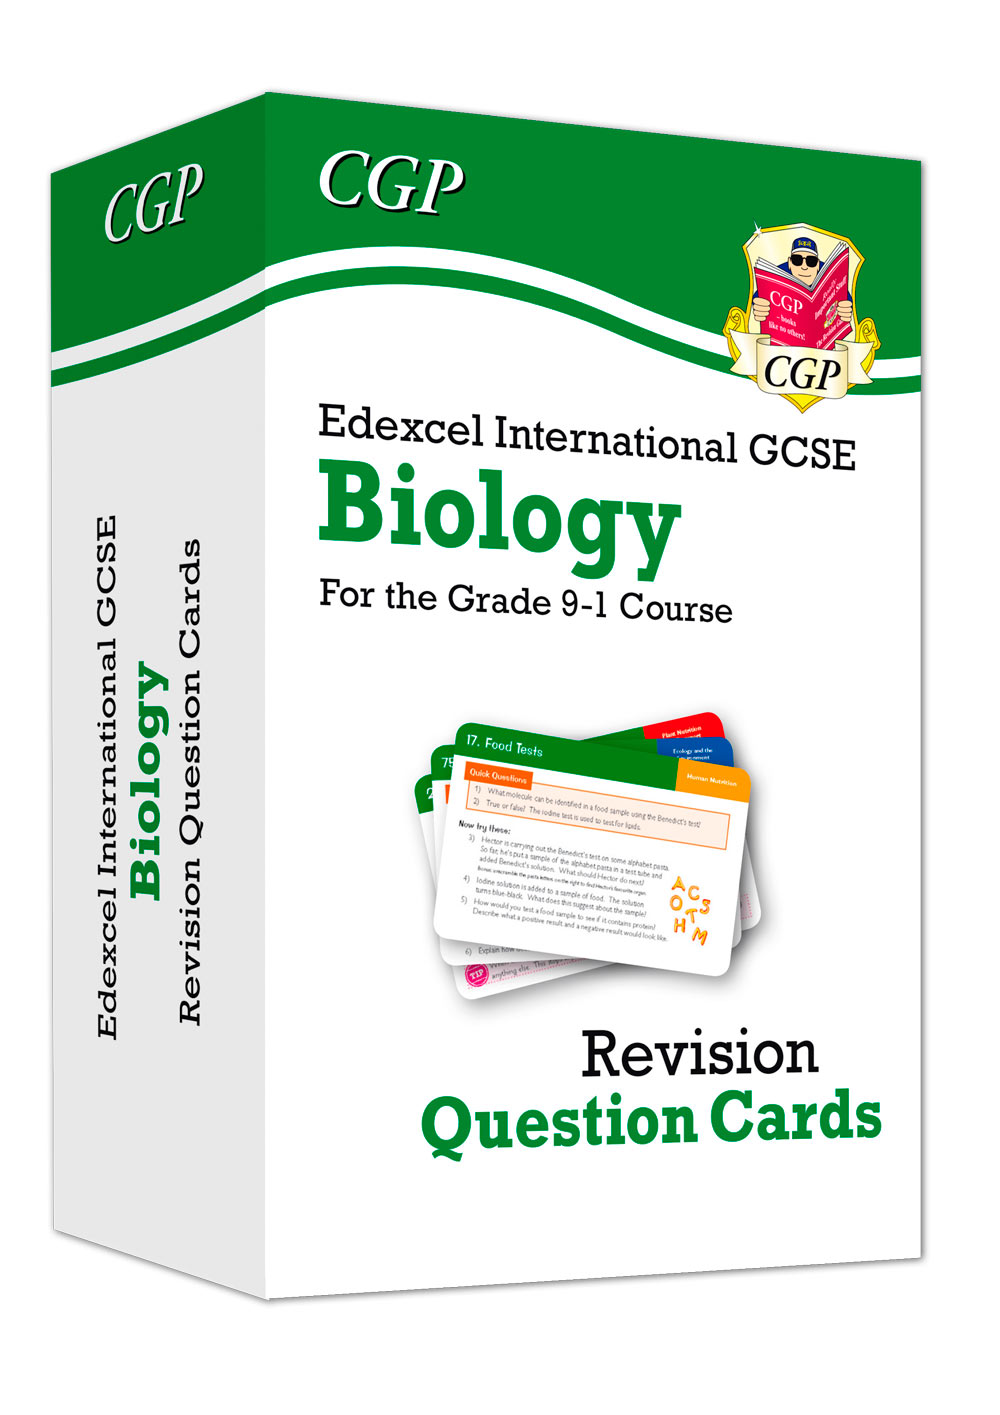 BEFI41 - New Grade 9-1 Edexcel International GCSE Biology: Revision Question Cards